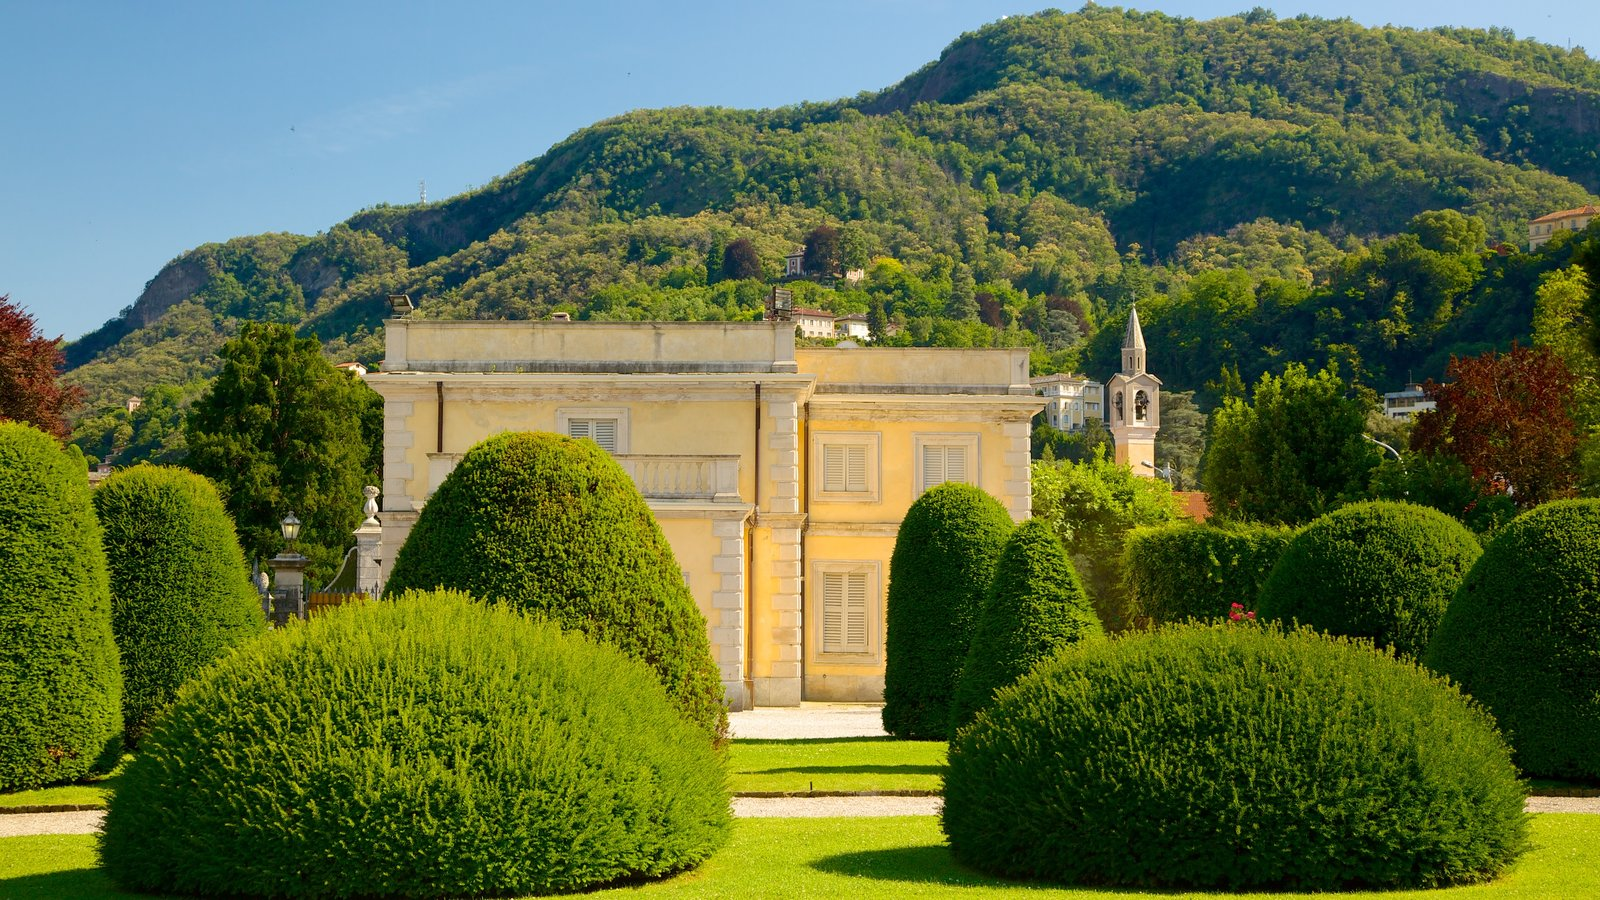 Villa Olmo which includes a garden and heritage elements